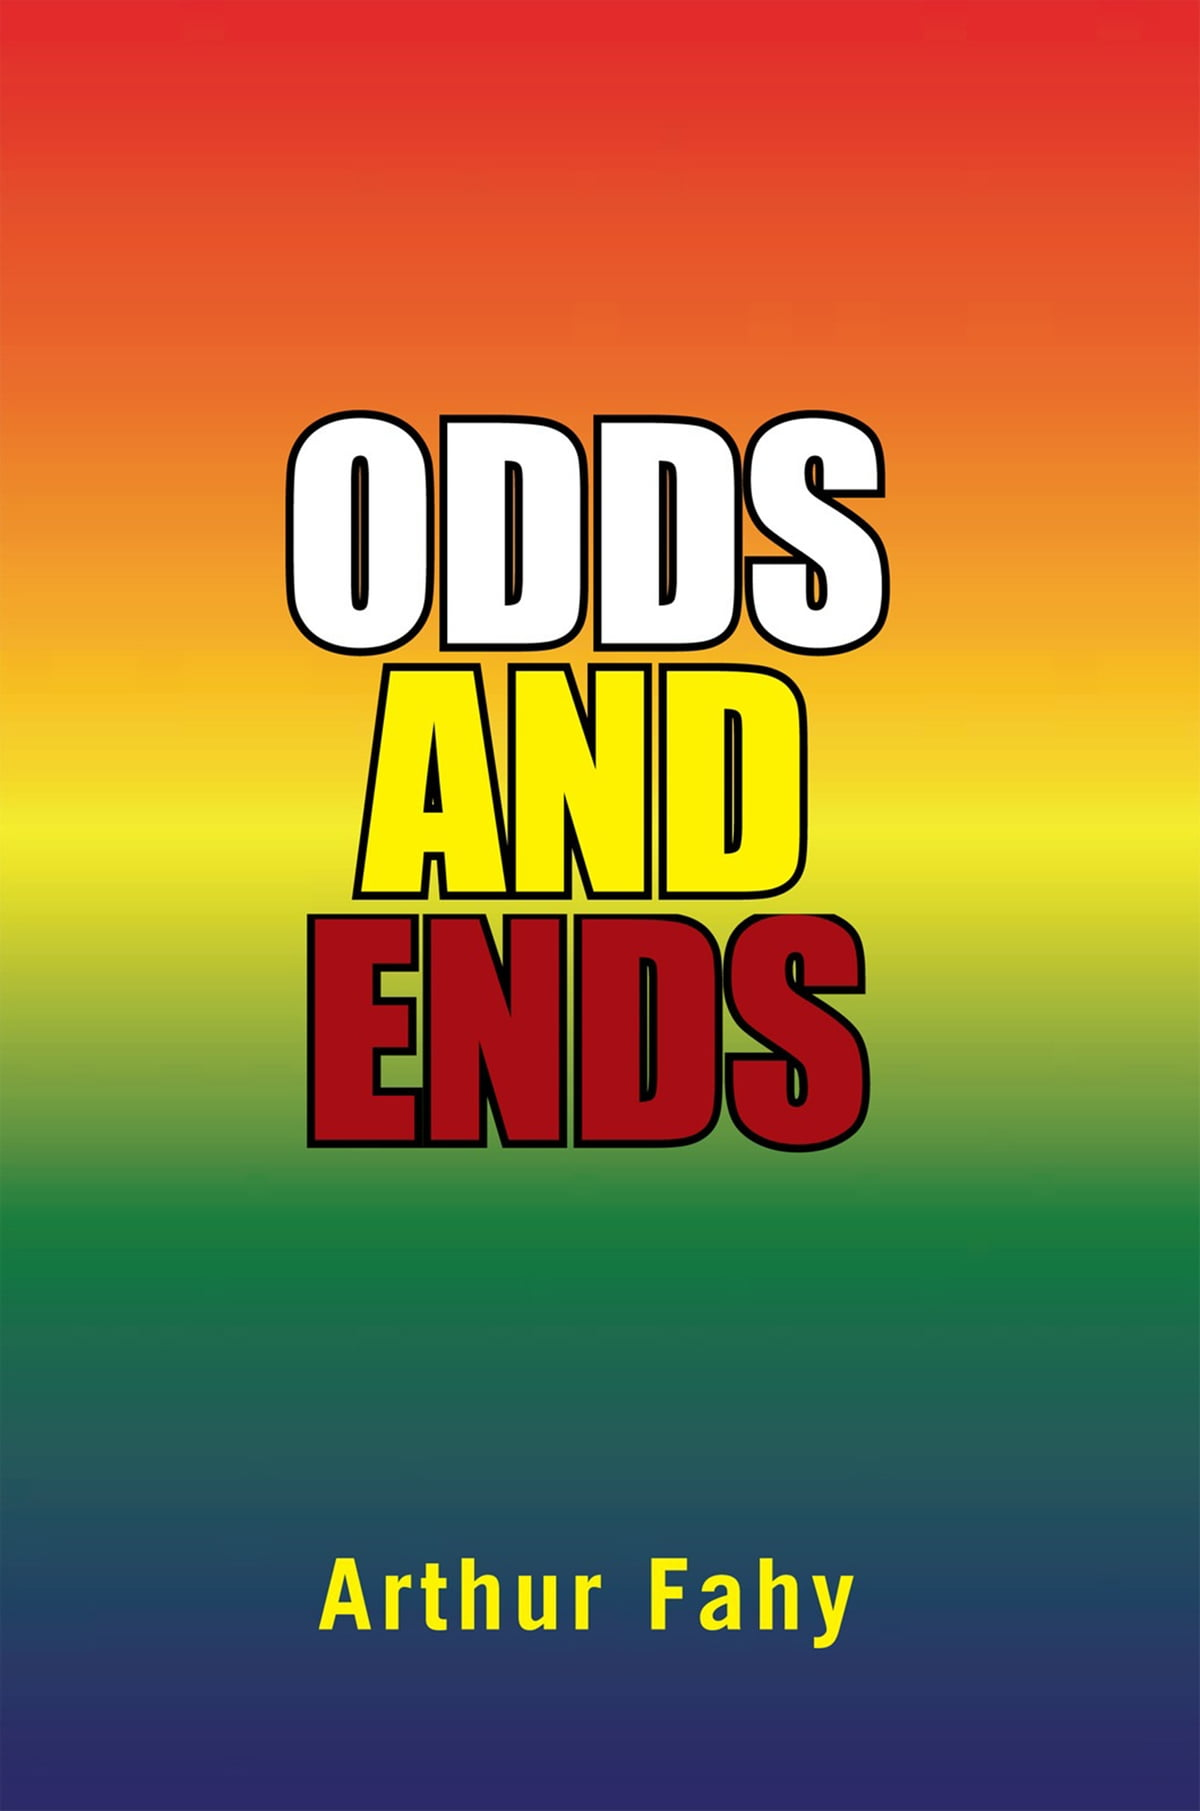 00s odds and ends war r